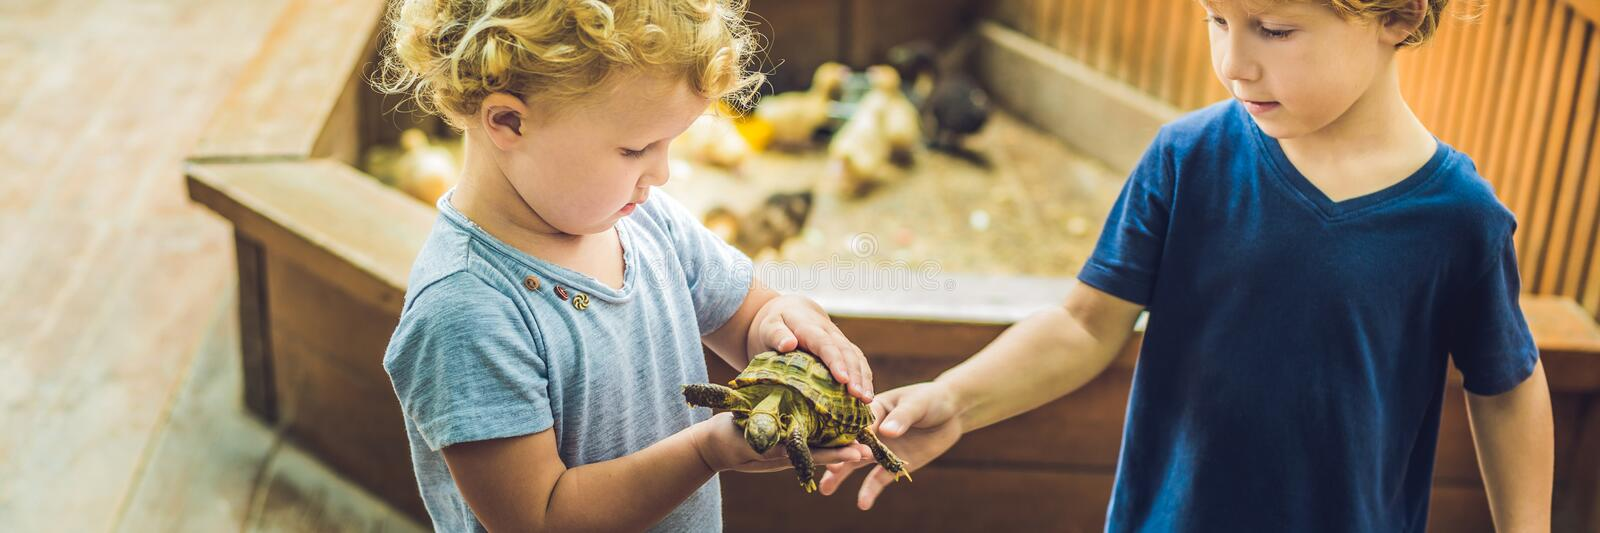 Toddlers boy and girl caresses and playing with turtle in the petting zoo. concept of sustainability, love of nature stock image